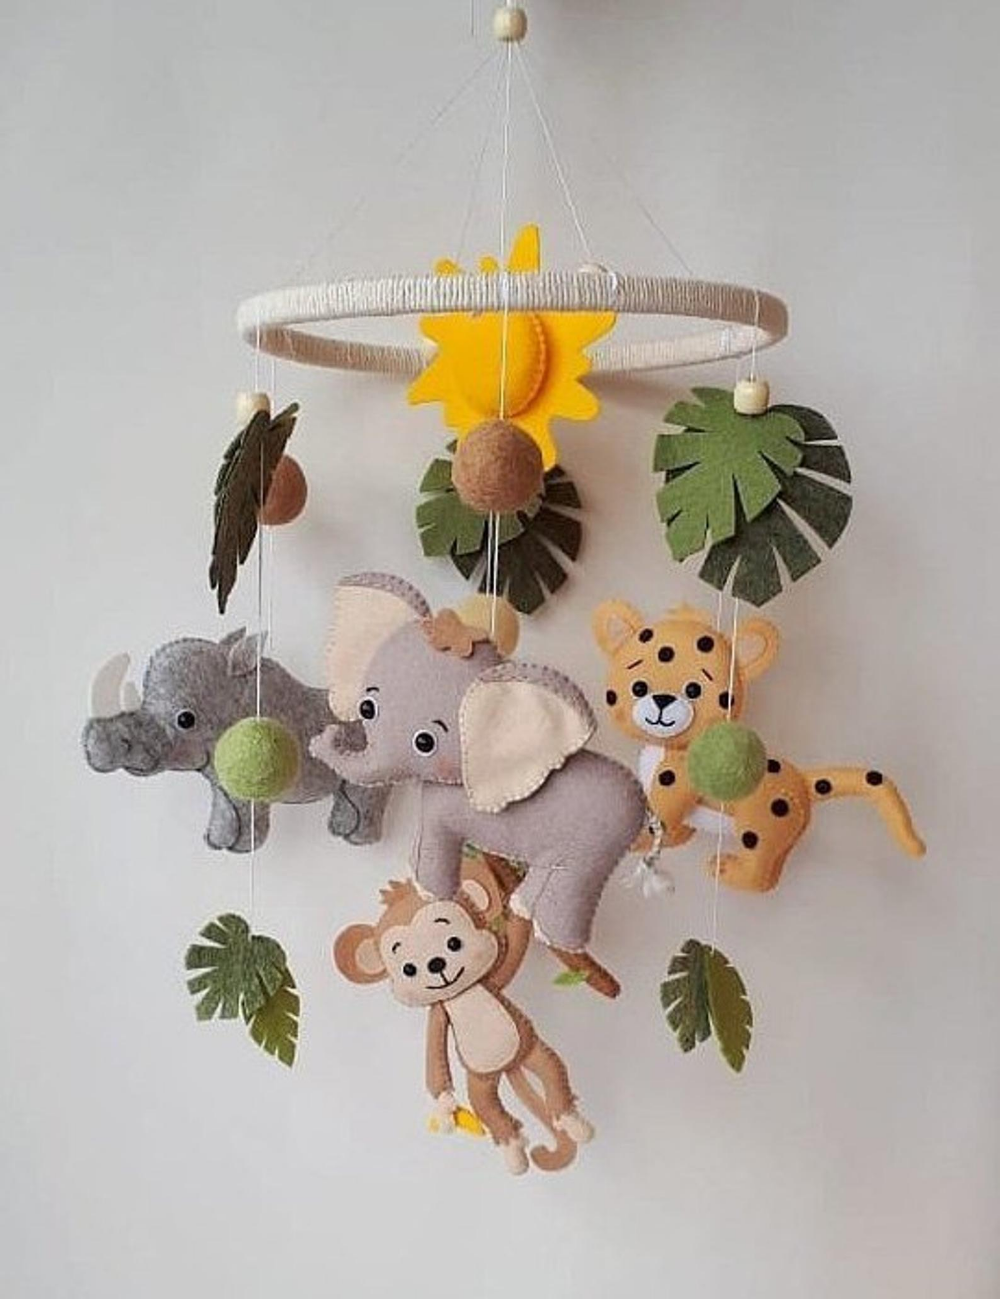 Jungle mobile safari baby mobiles baby animals mobiles | Etsy